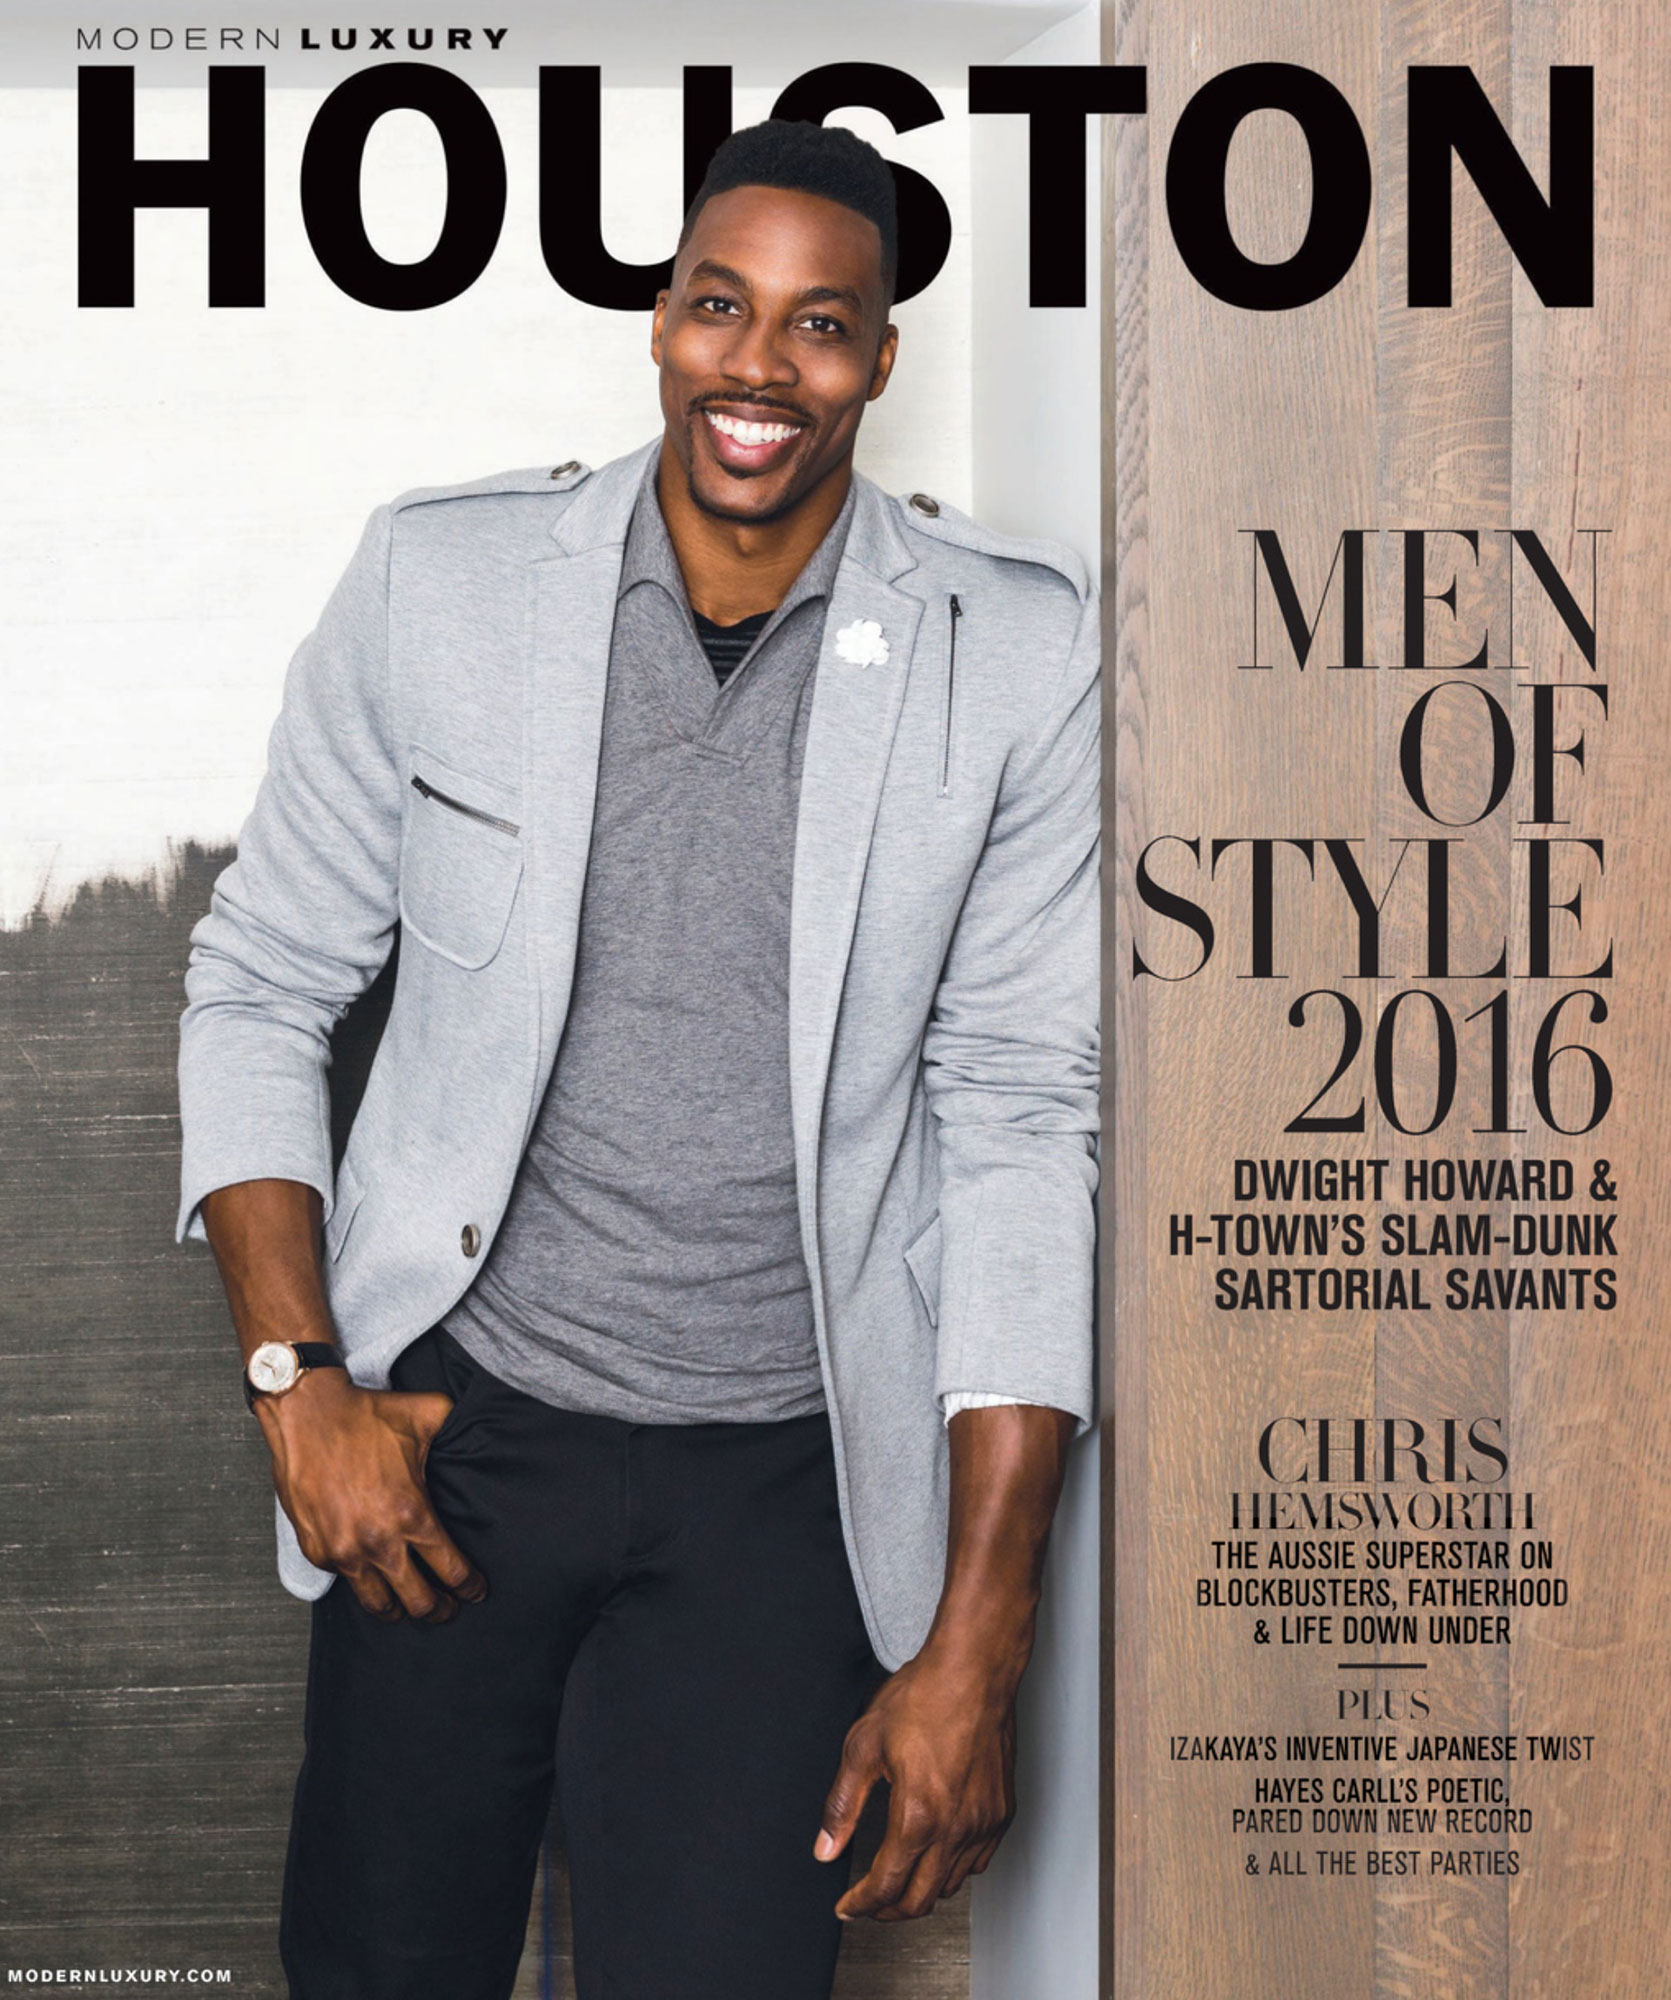 Modern Luxury Houston Dwight Howard - Magazine Photography - Julie Soefer Photography